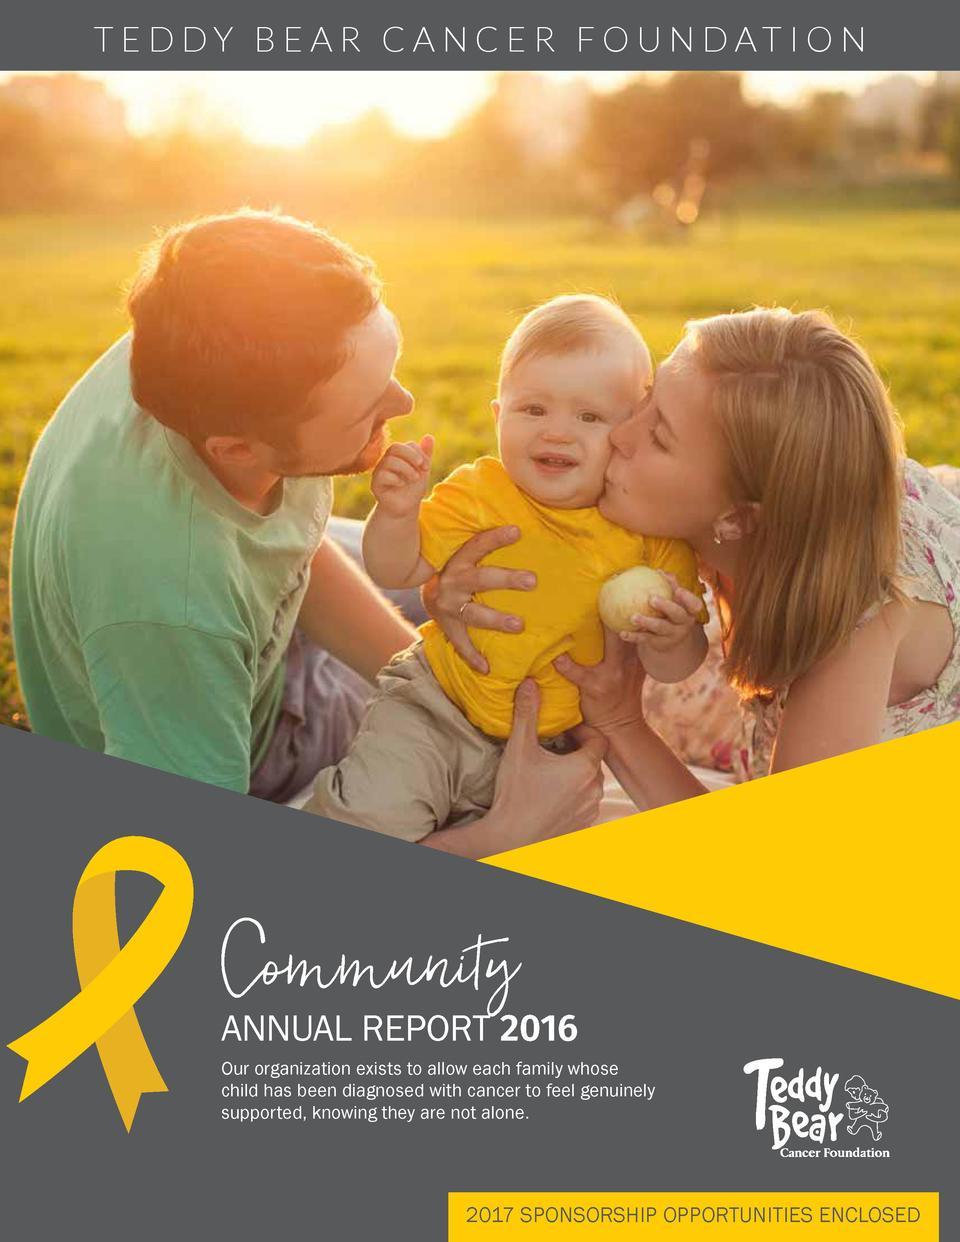 T E D DY B E A R C A N C E R F O U N DAT I O N  Community  ANNUAL REPORT 2016 Our organization exists to allow each family...